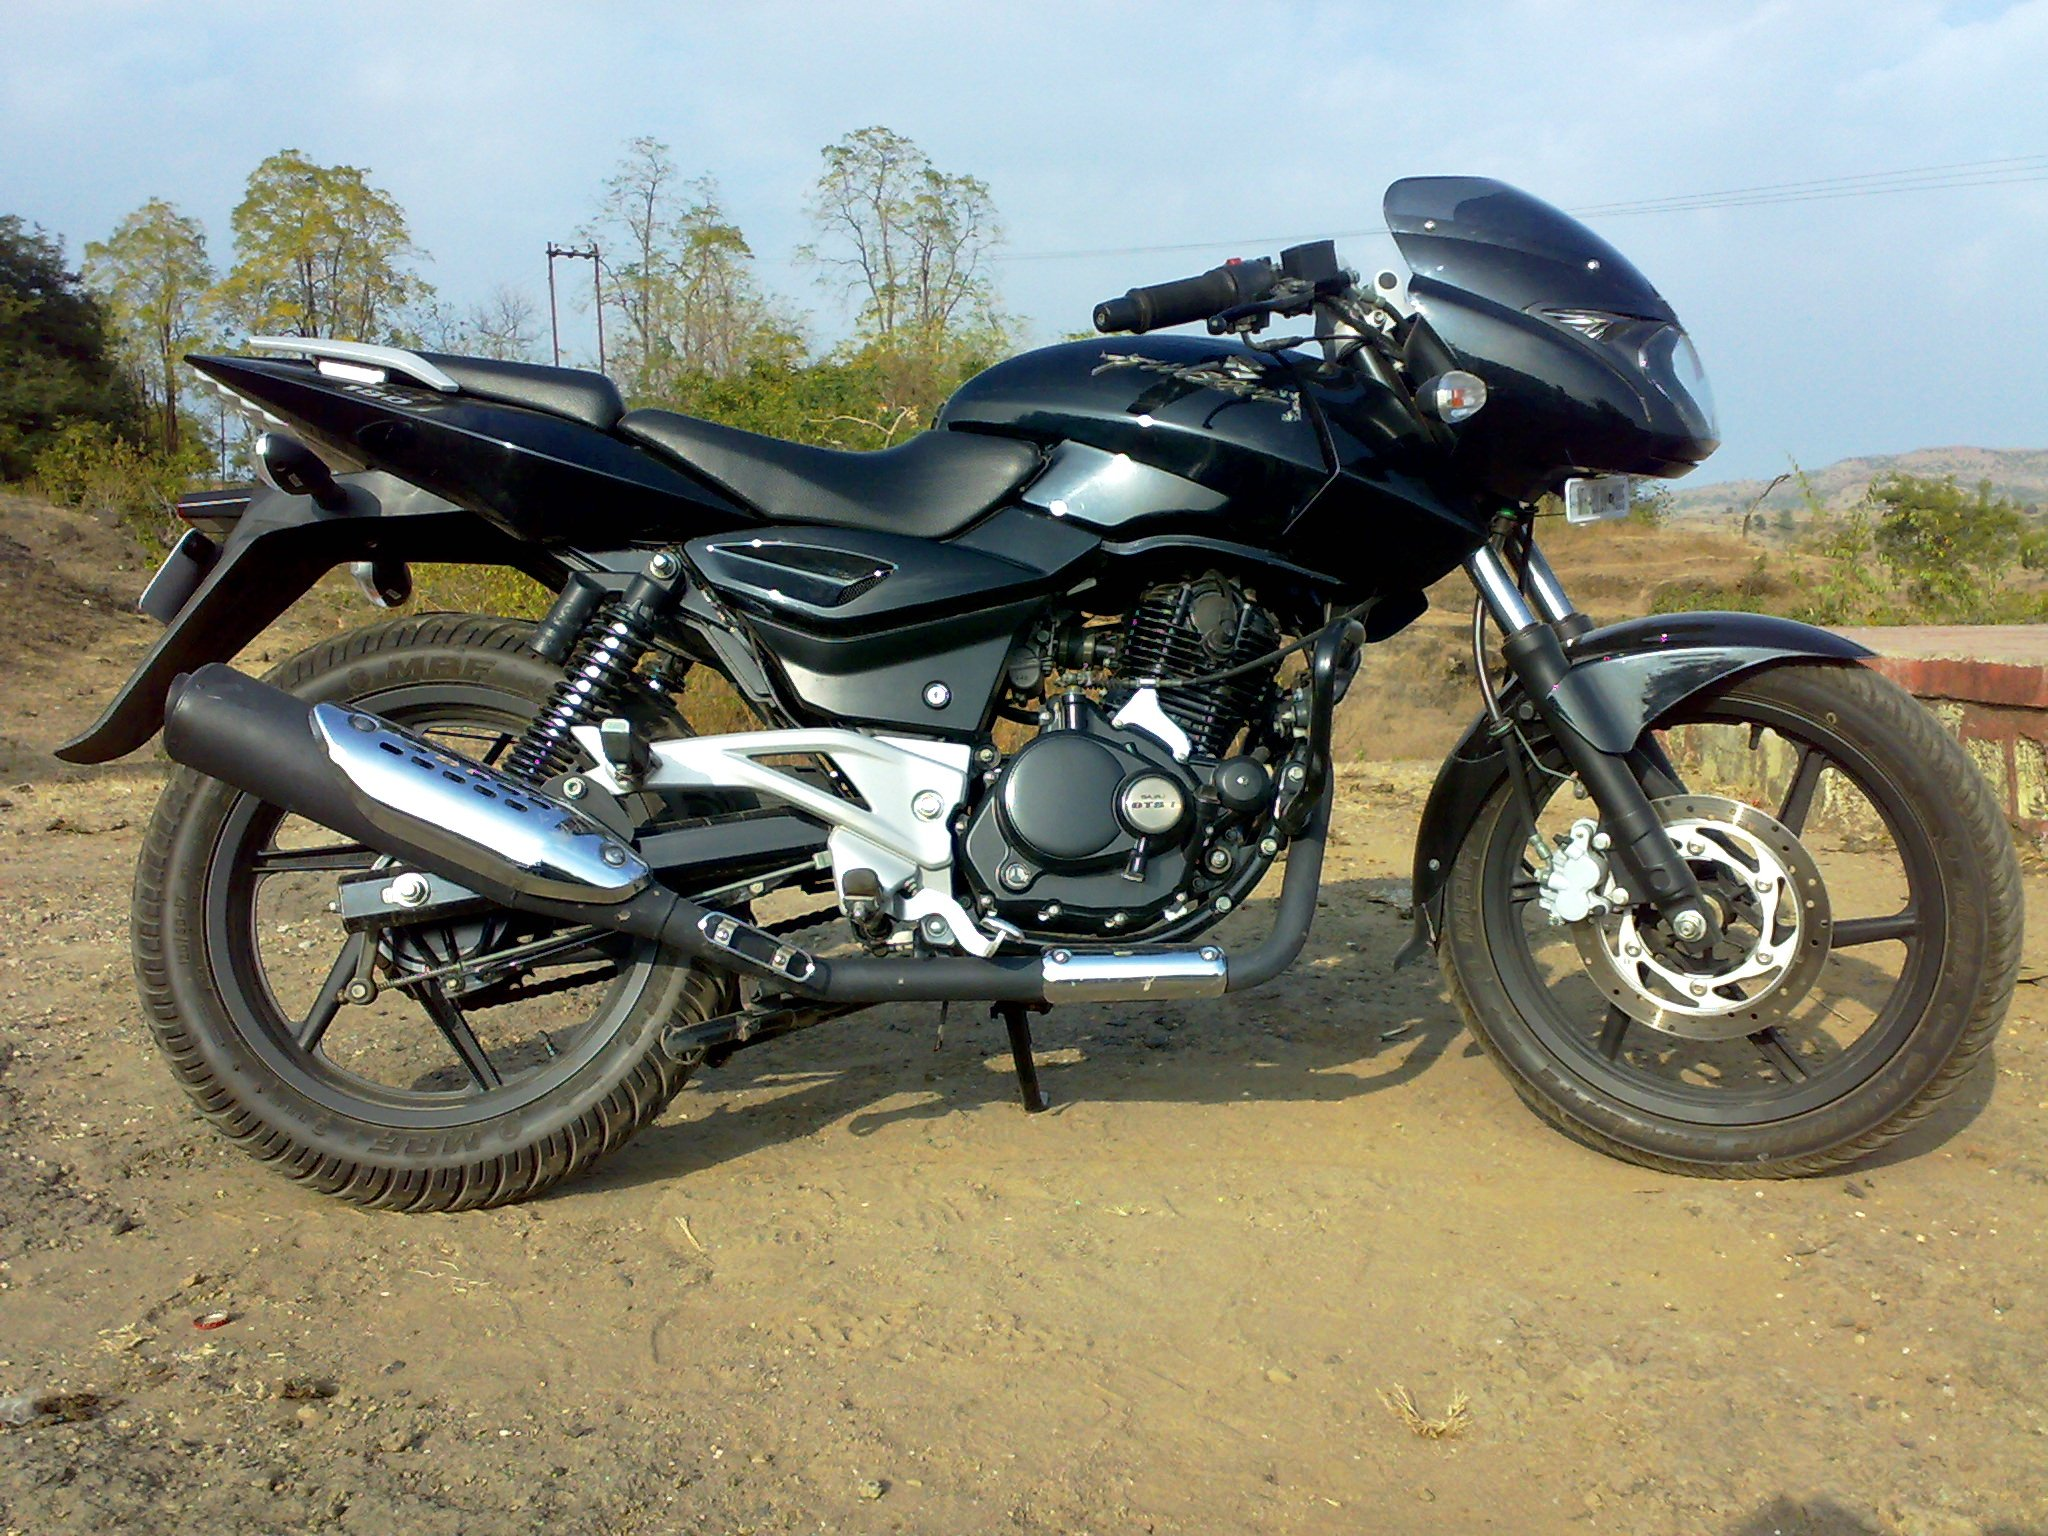 pulsar 220 black hd wallpapers